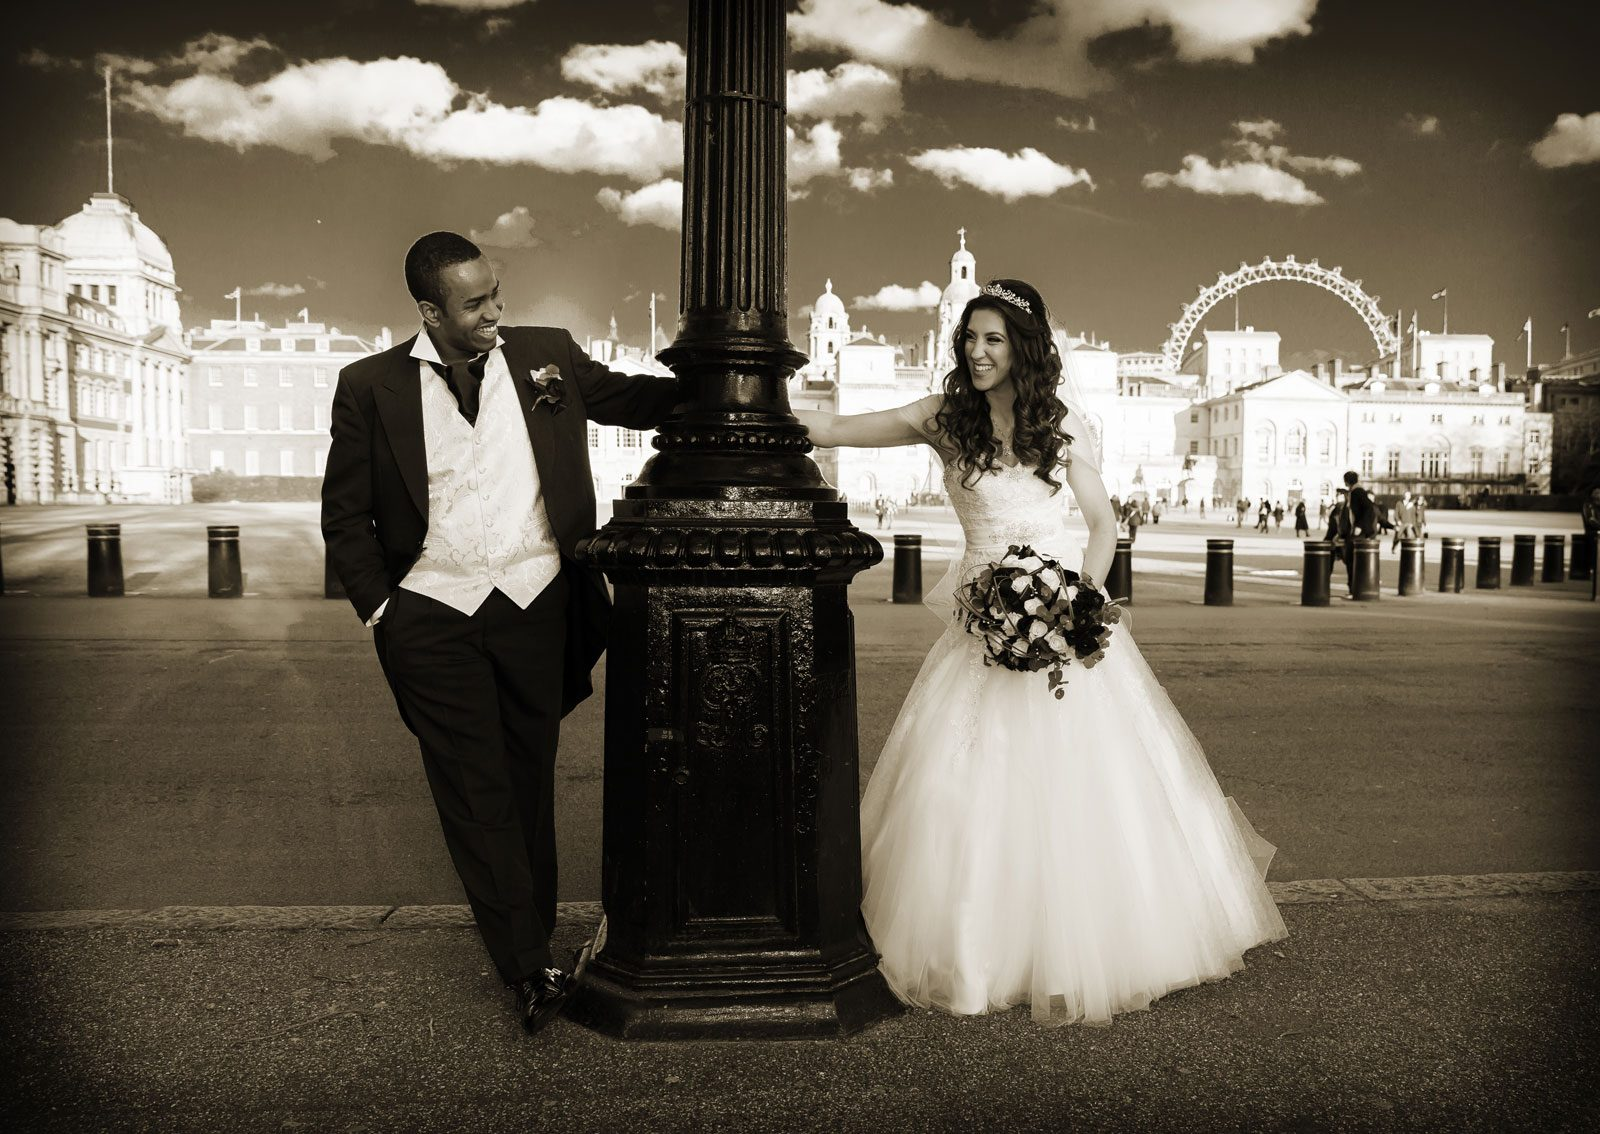 Love at horse guards parade photo